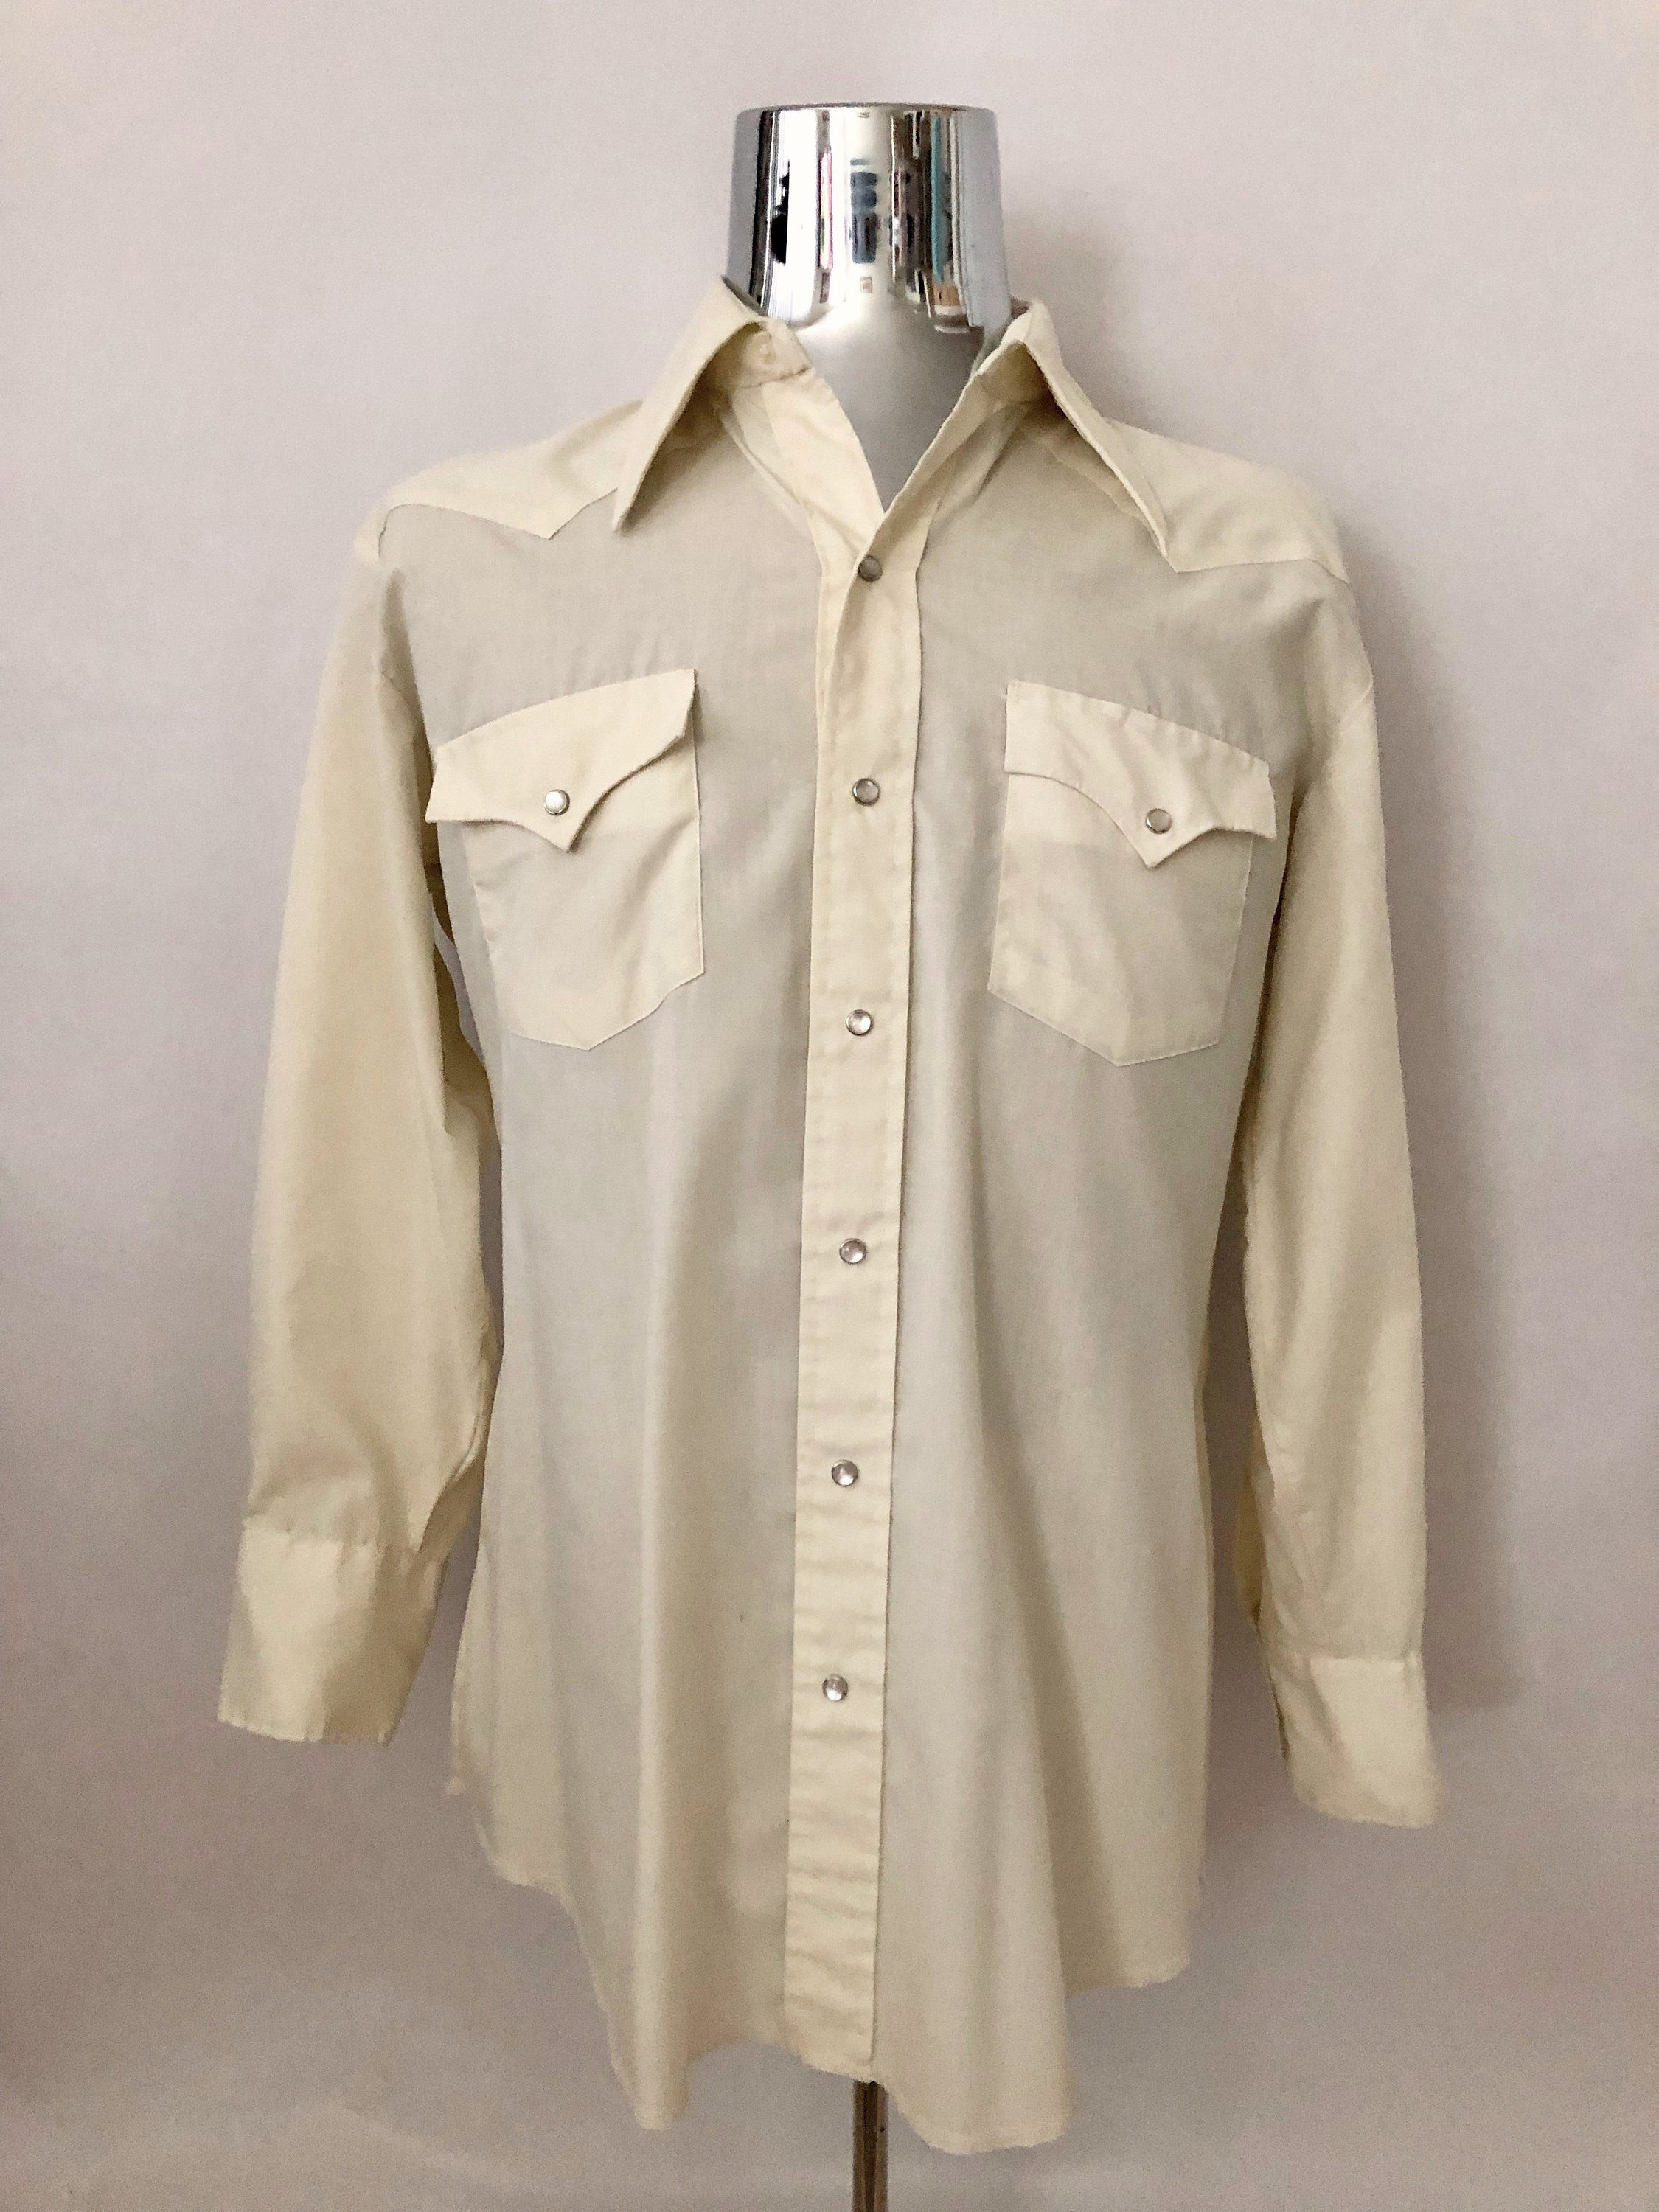 780cdf55 Off White Mens Western Shirt « Alzheimer's Network of Oregon